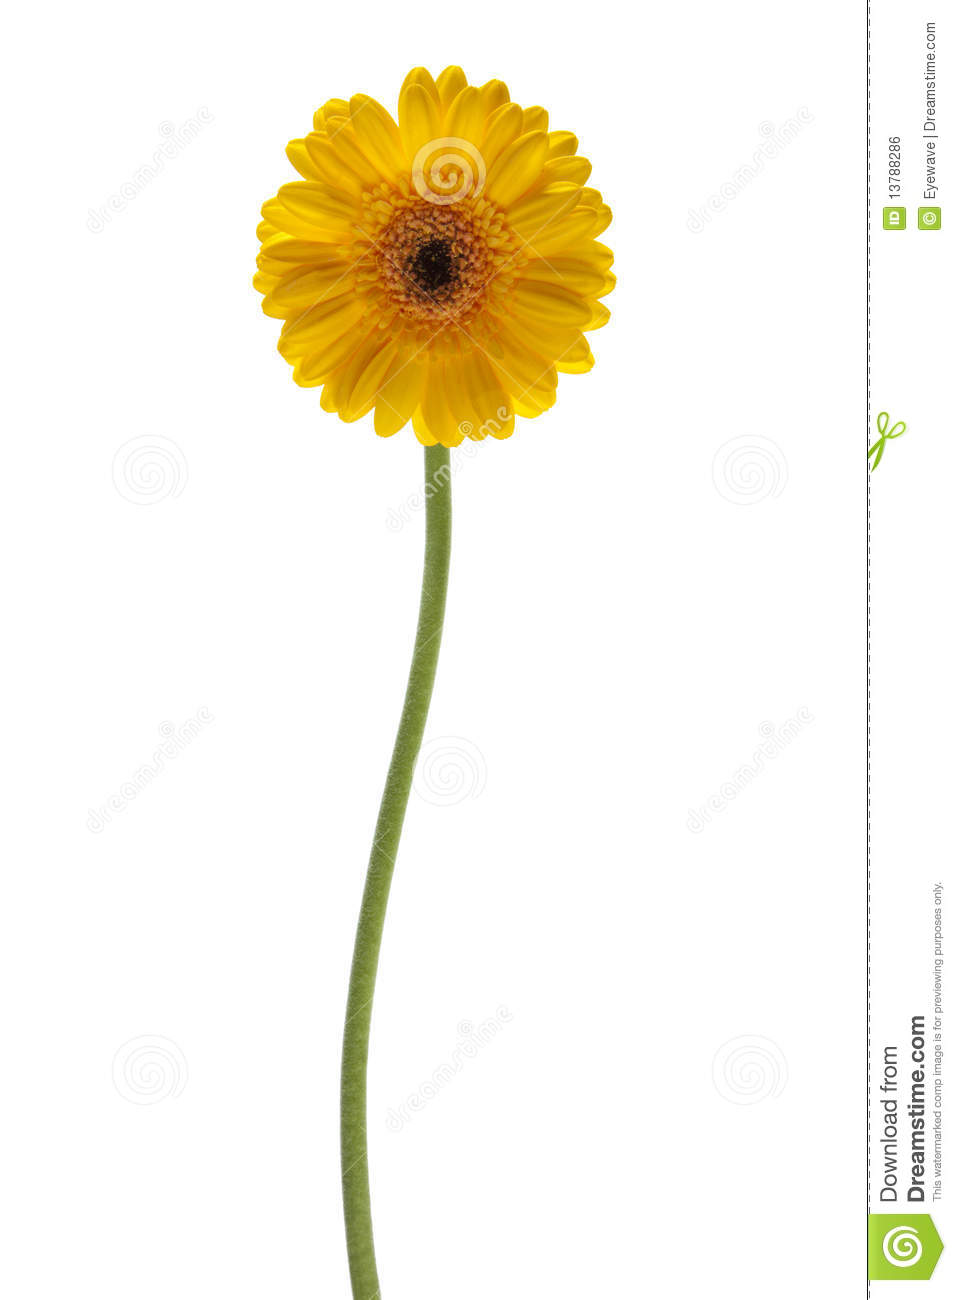 Yellow Daisy Flower Isolated Royalty Free Stock Image ... White Daisy Flowers Clipart